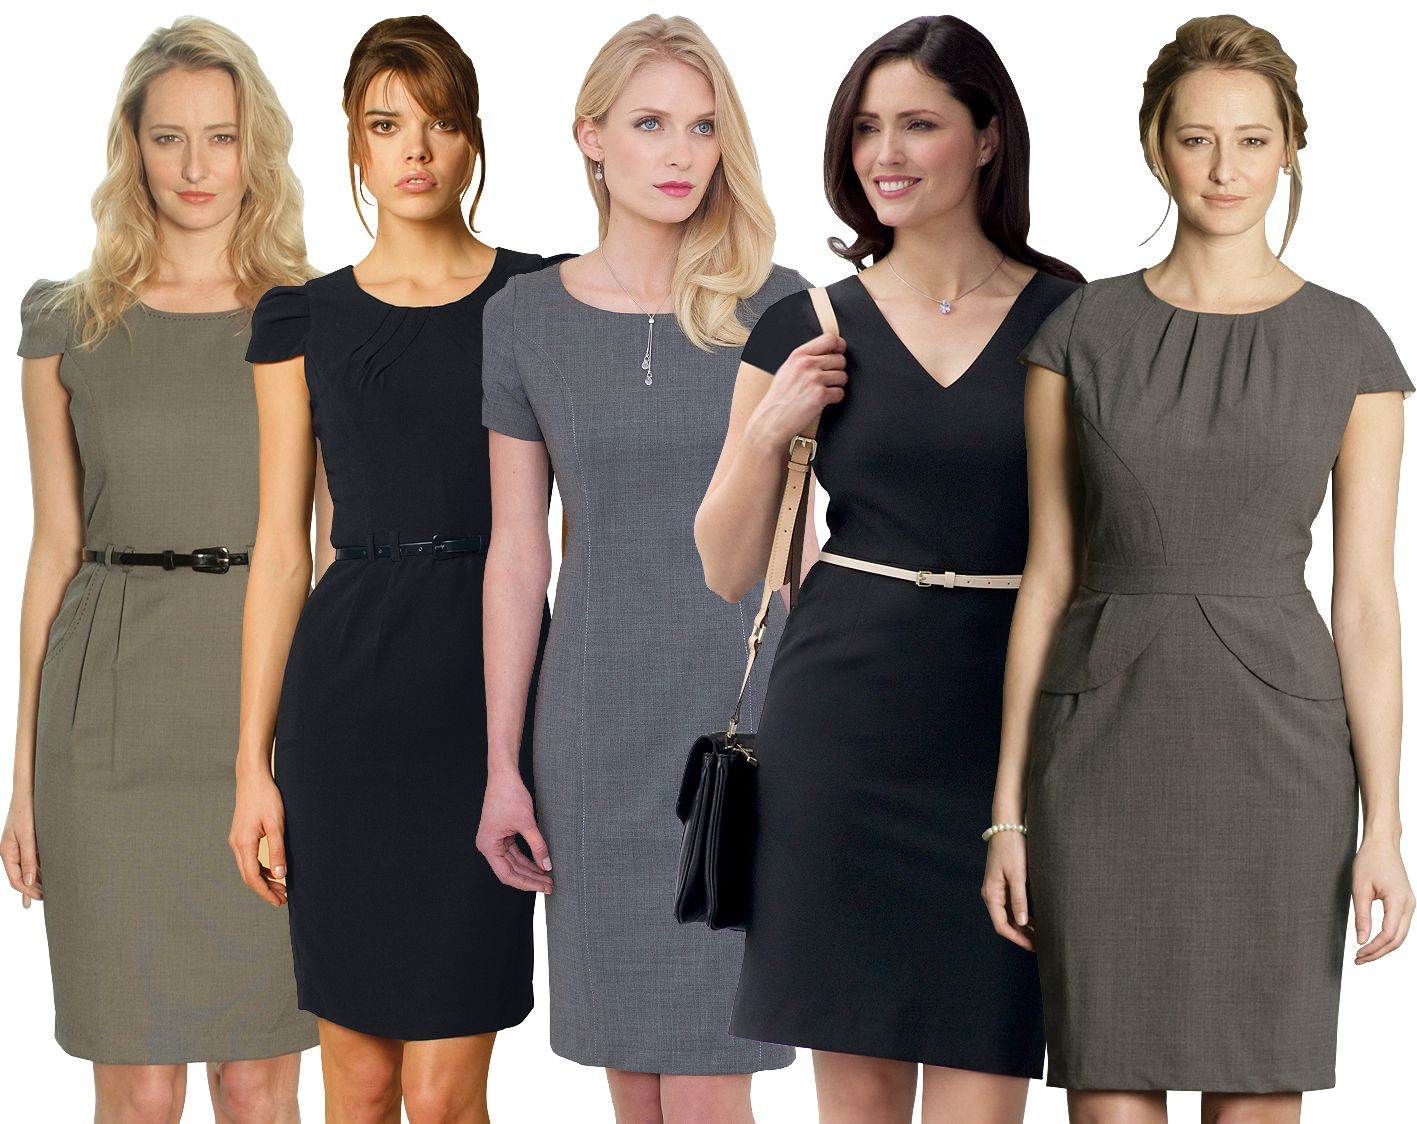 Changing trends in corporate uniforms | Fuel4Fashion ...